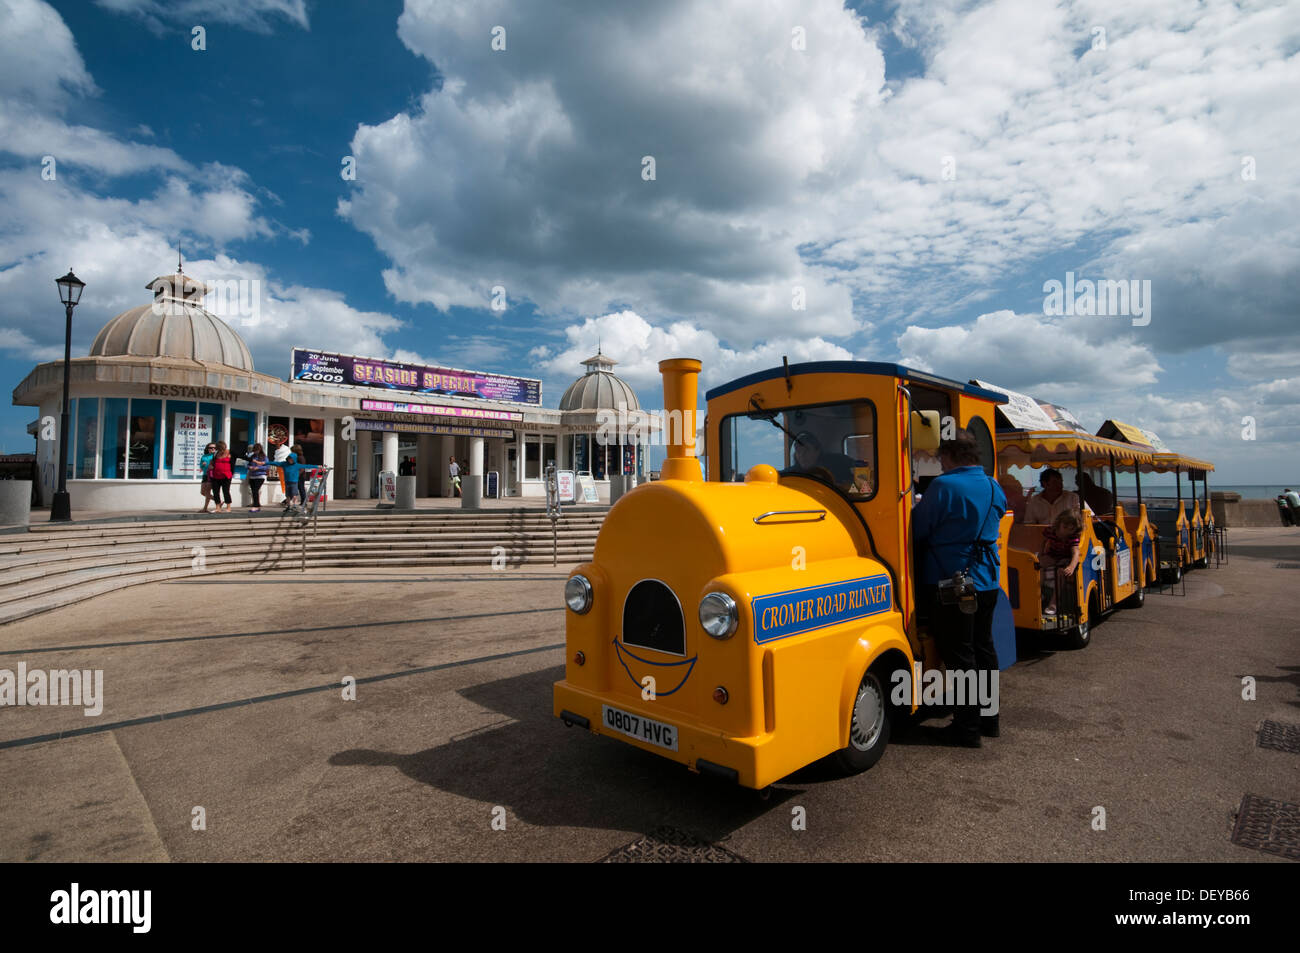 Small train used to take tourists around the town in front of Cromer Pier seaside resort in Norfolk East Anglia England - Stock Image